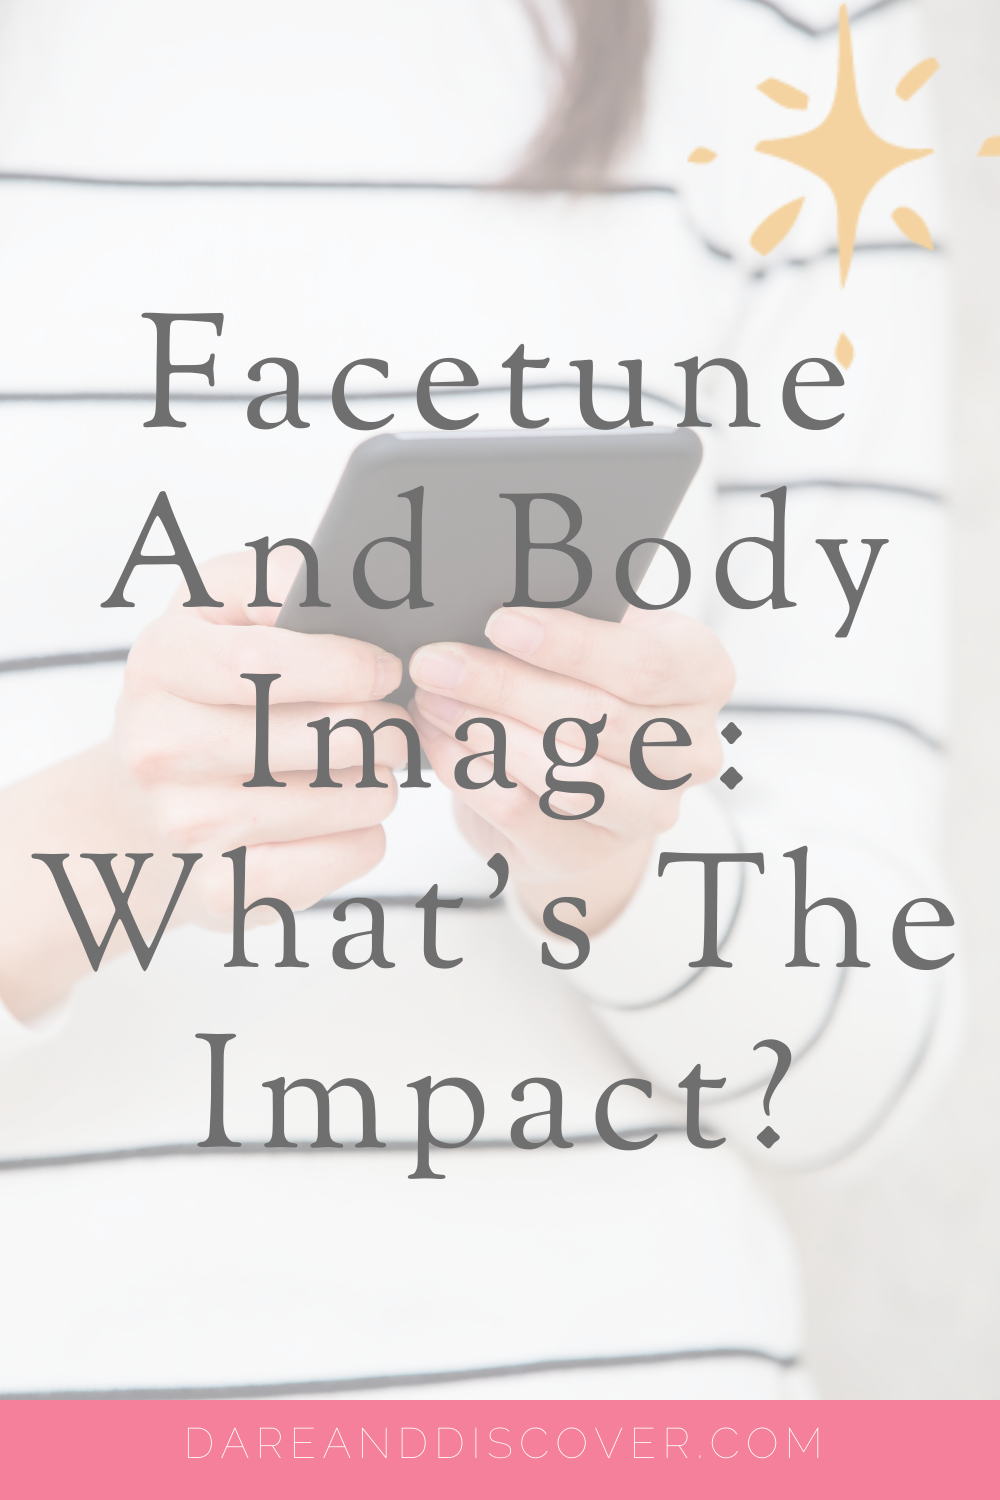 It's well known that a lot of people on Instagram use Facetune to alter their appearance. However, when it comes to Facetune and body image what impact is it having on us? 90% of adolescents use social media for over two hours a day and selfie culture can cause girls to compare themselves to others. I test out Facetune with some 'interesting' results and reflect on social media and body image | Social Media And Body Image | Body Dysmorphia | #Facetune #BodyImage #SocialMedia